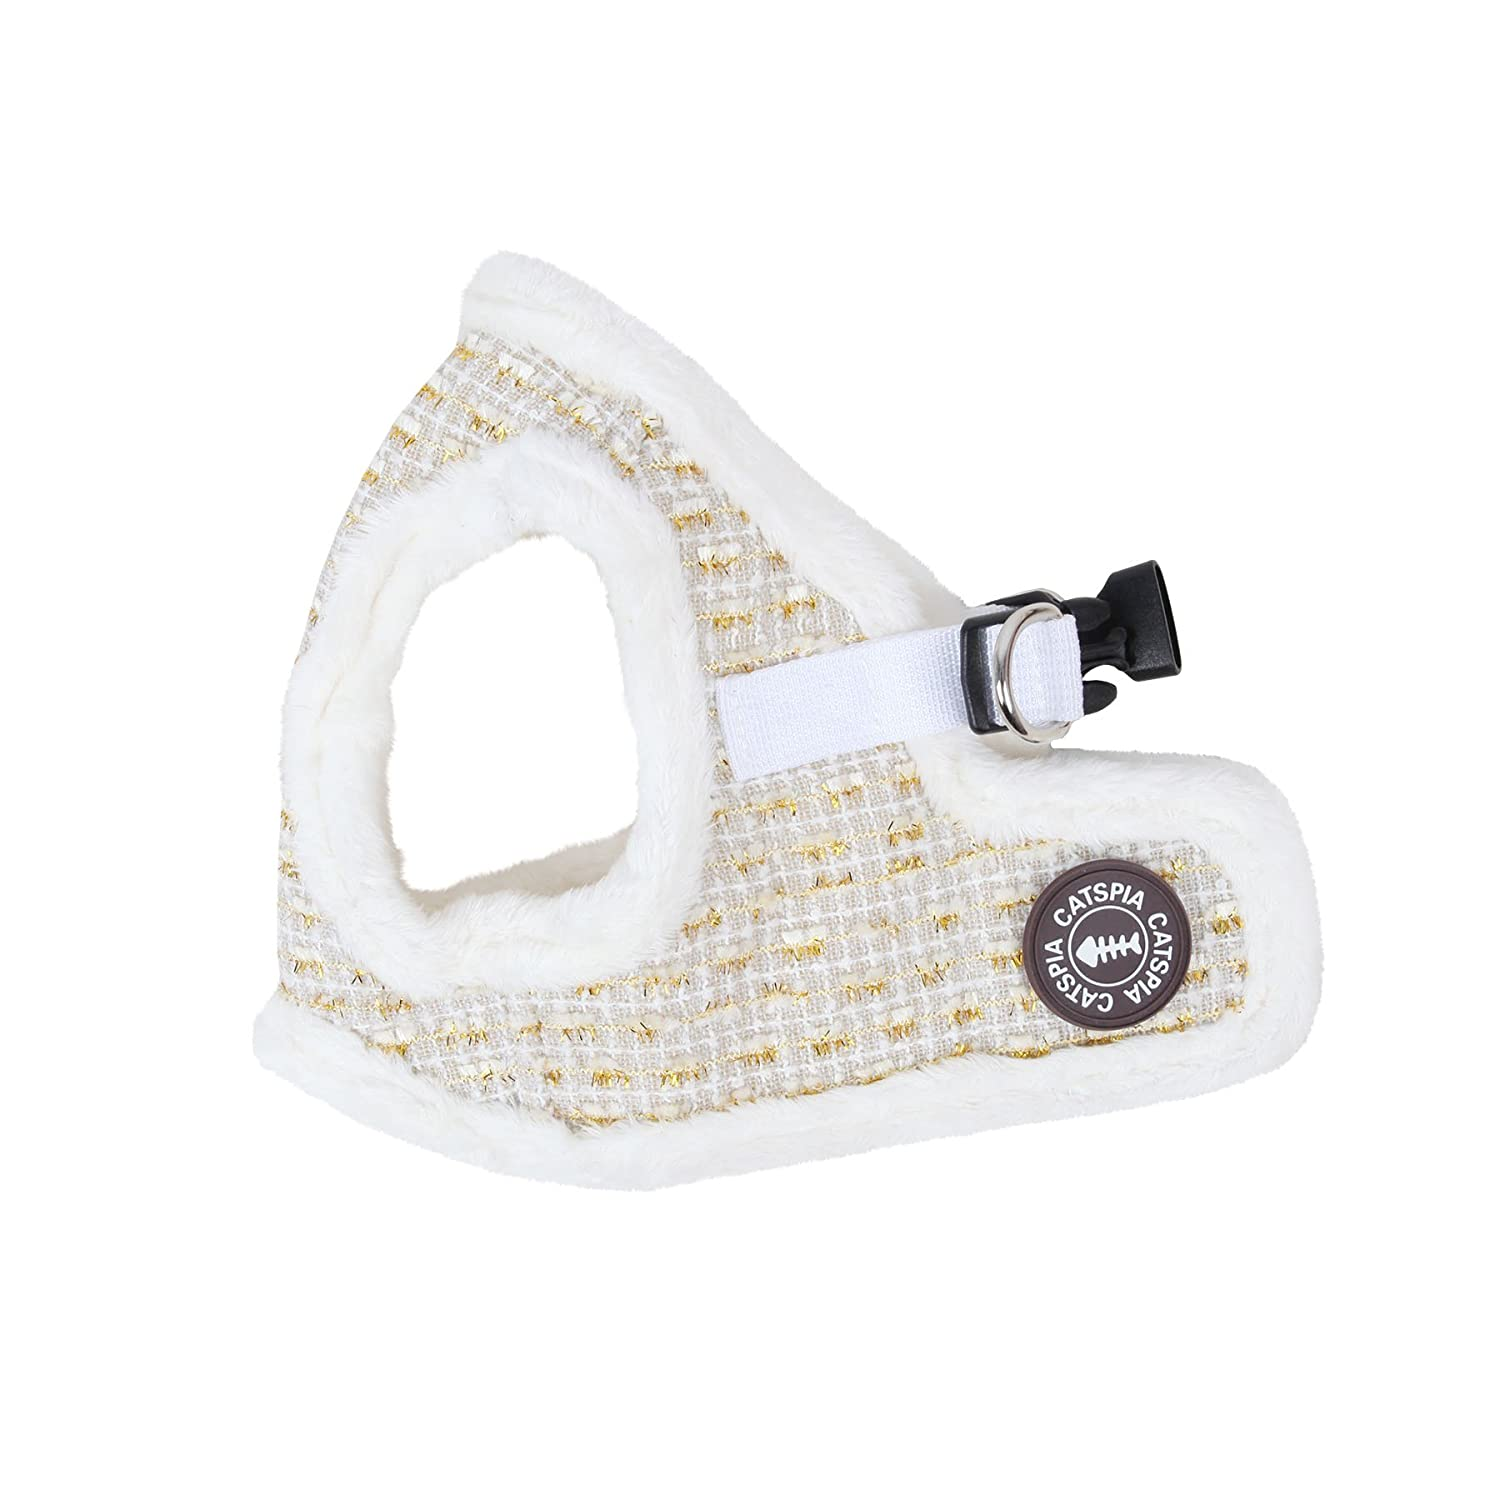 CATSPIA Purry Vest Harness, Large, Ivory